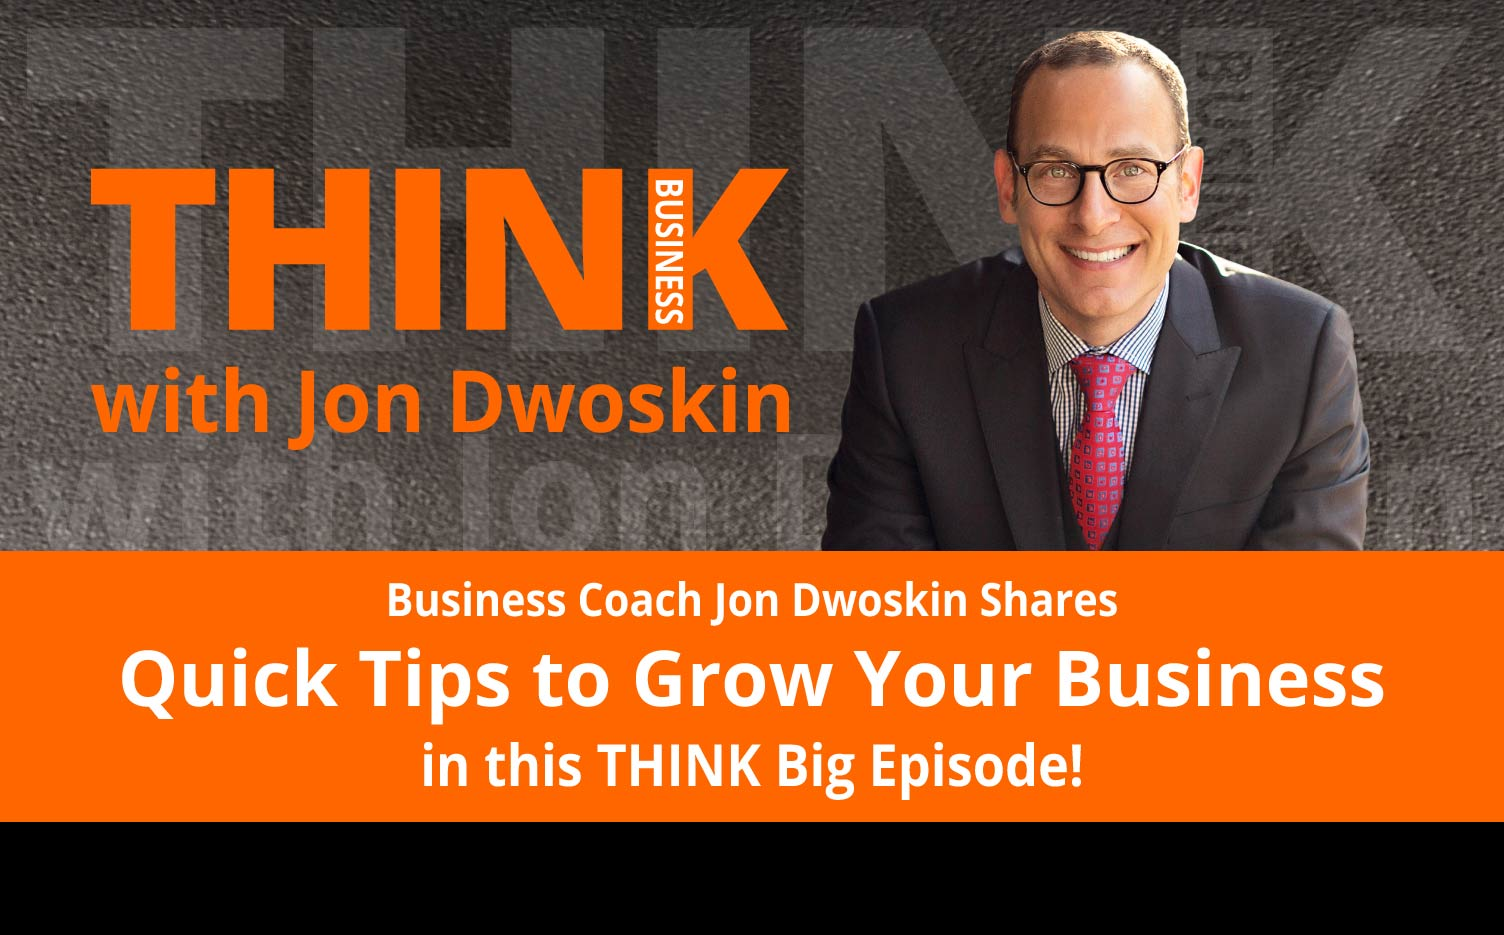 THINK Business Podcast: Today's Quick Tip: Choosing Your Theme